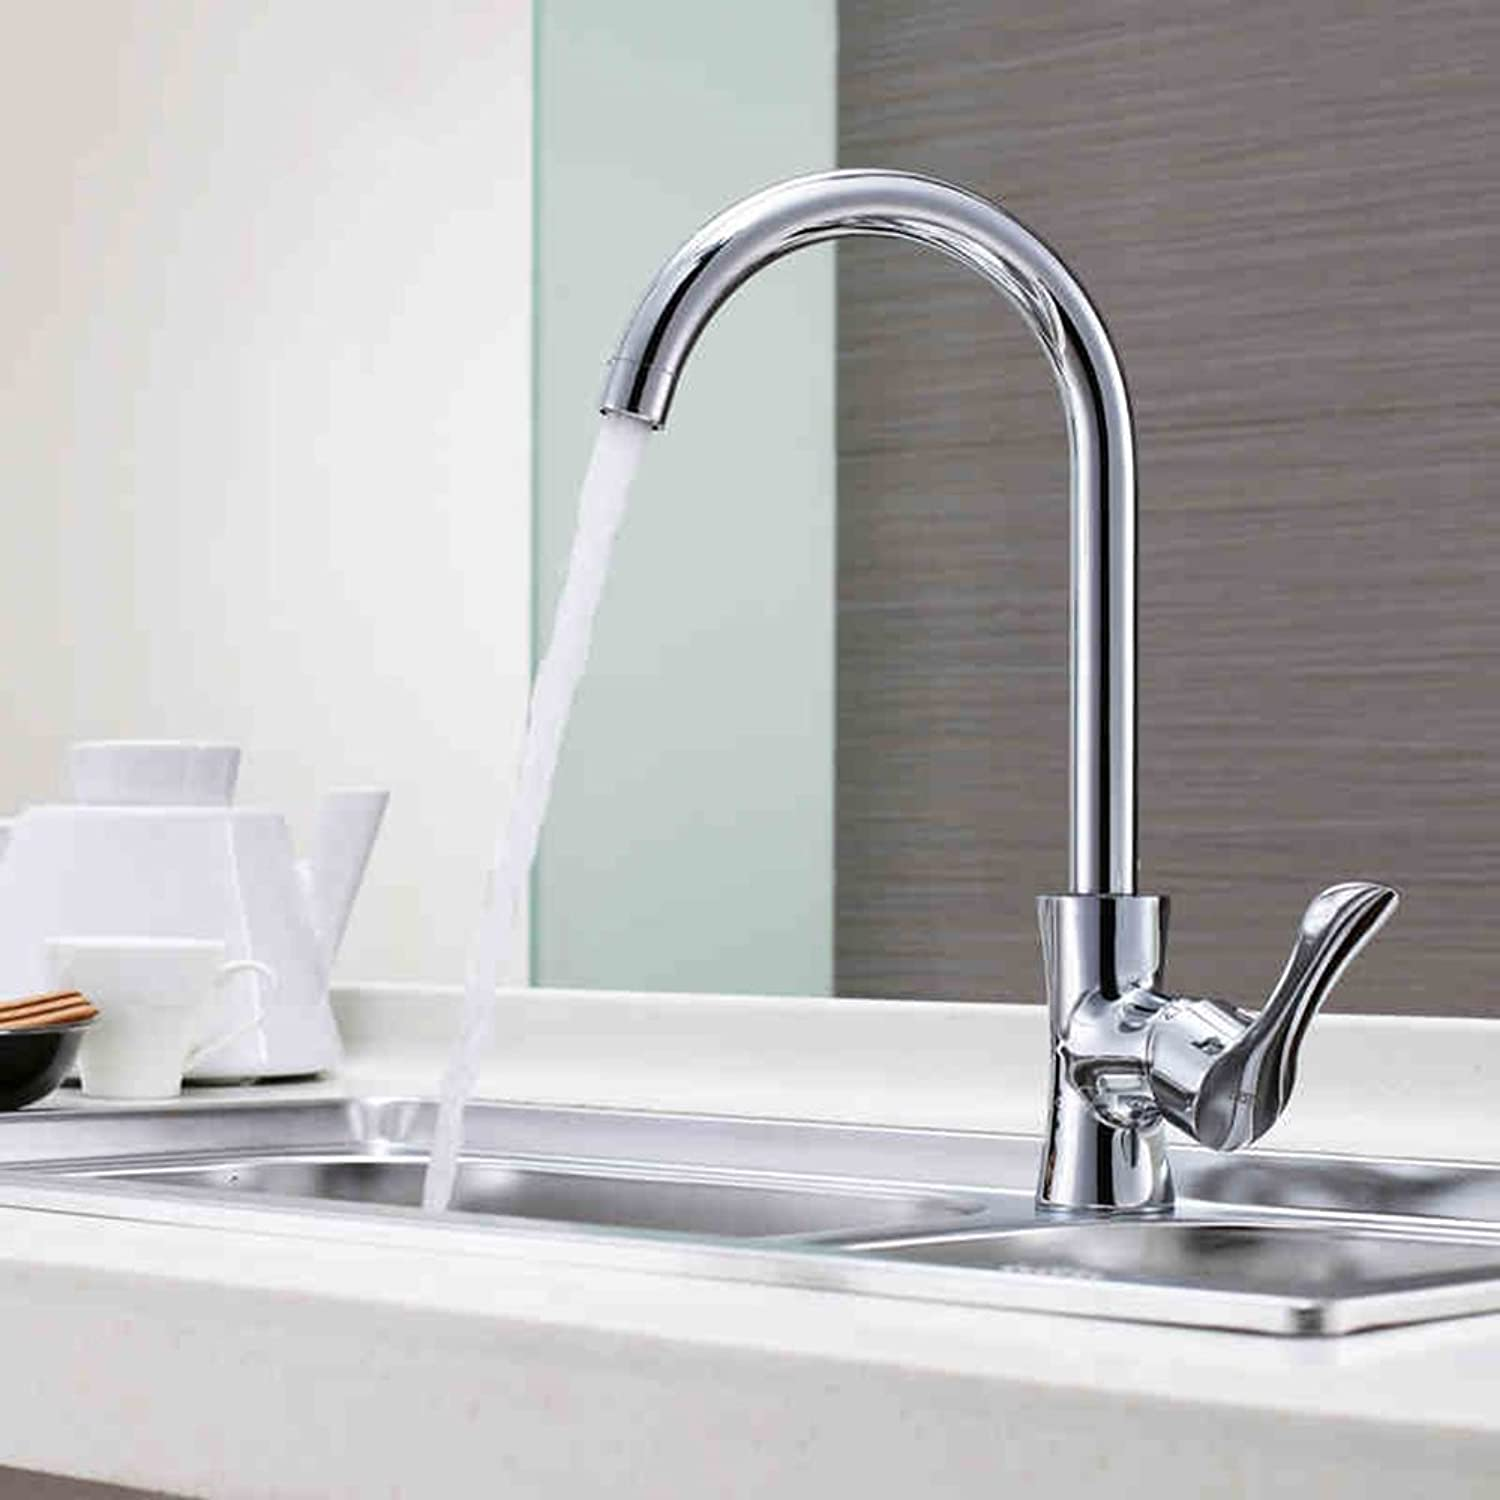 Sun LL All Bronze Kitchen Faucet Caipen Faucet Sink With Hot And Cold Water Faucet Hose